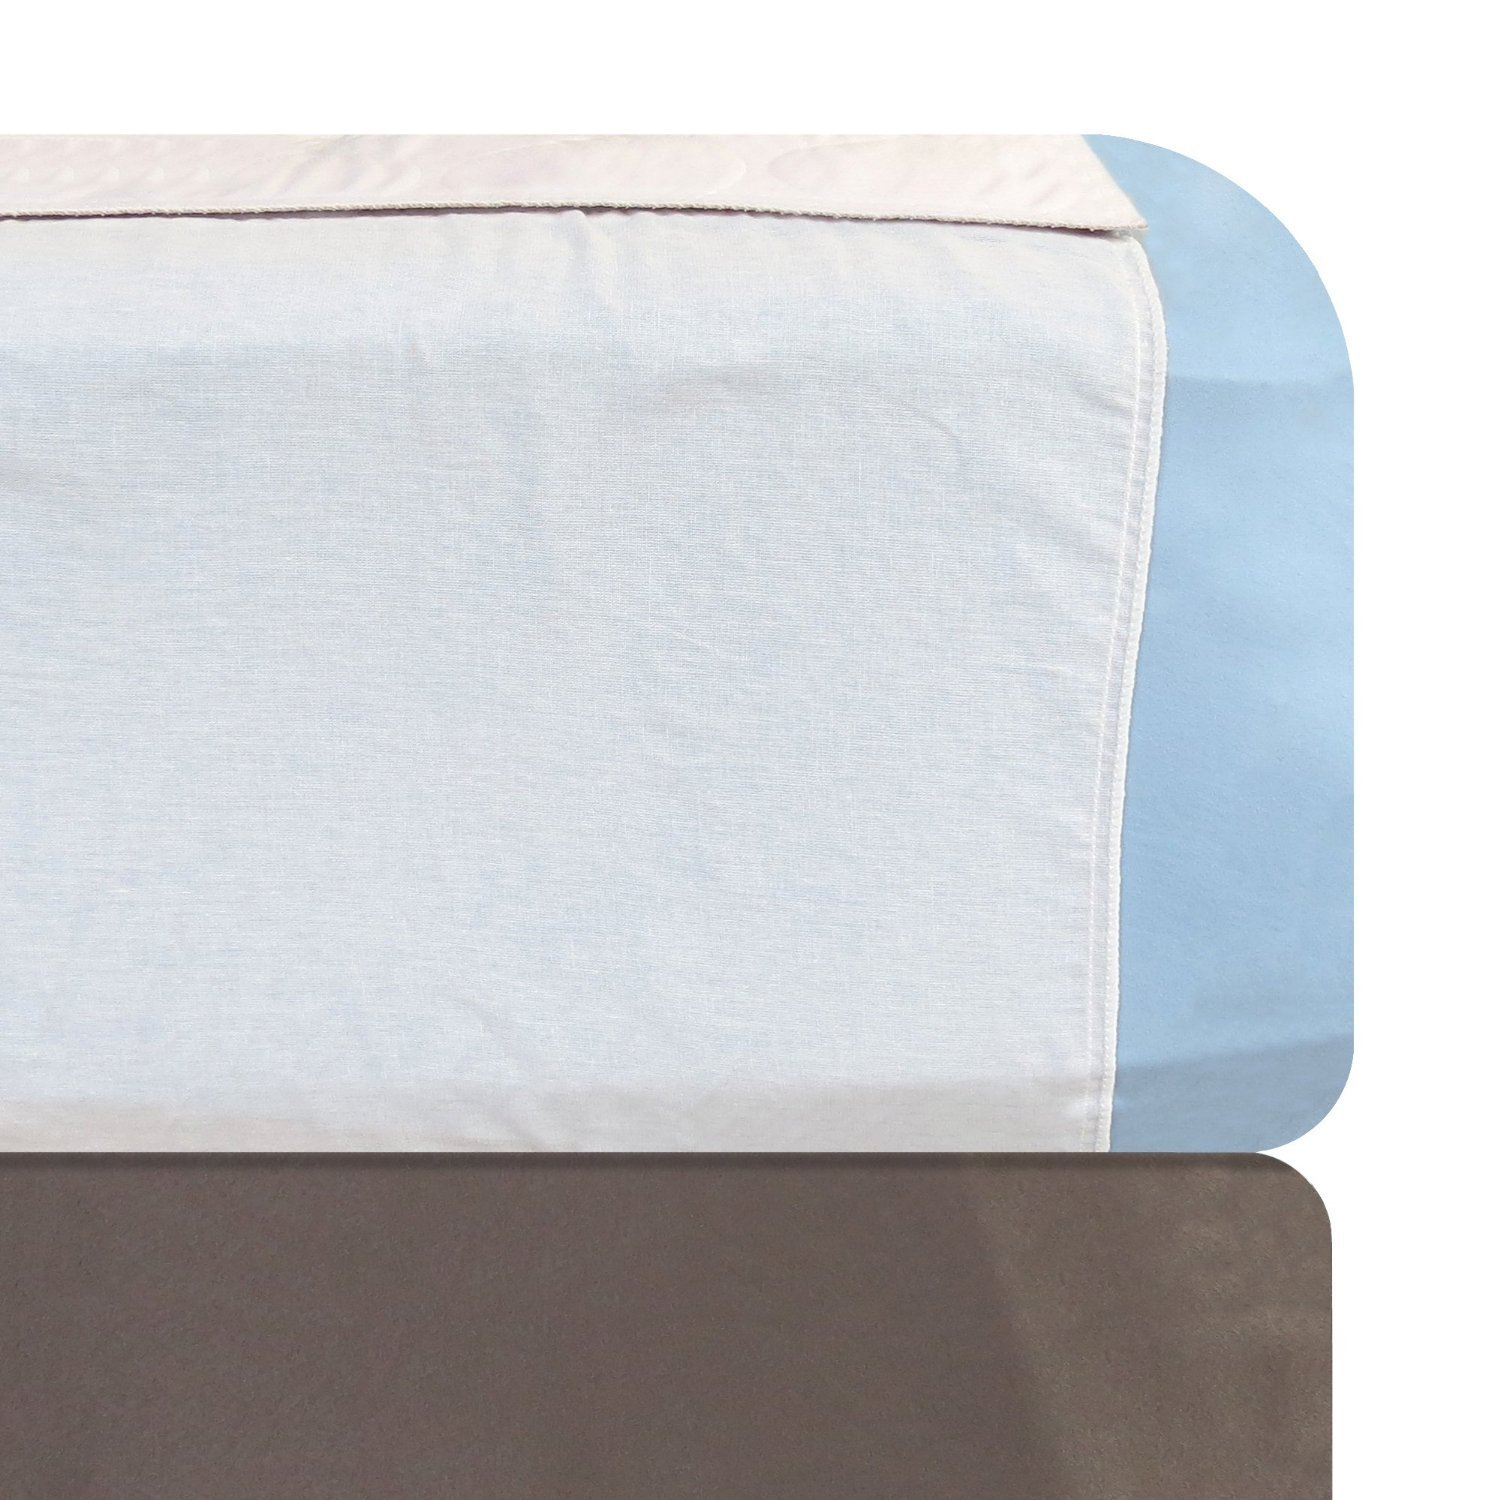 Kleinert's Reusable Draw Sheet for Mattress. Comfort & Super Absorbency with Tuck-Tails Hold Pad in Place. 20'' Tails On Each Side. 3 Layer Pad with Polyester Soaker & Waterproof Bottom. 34'' X 36''